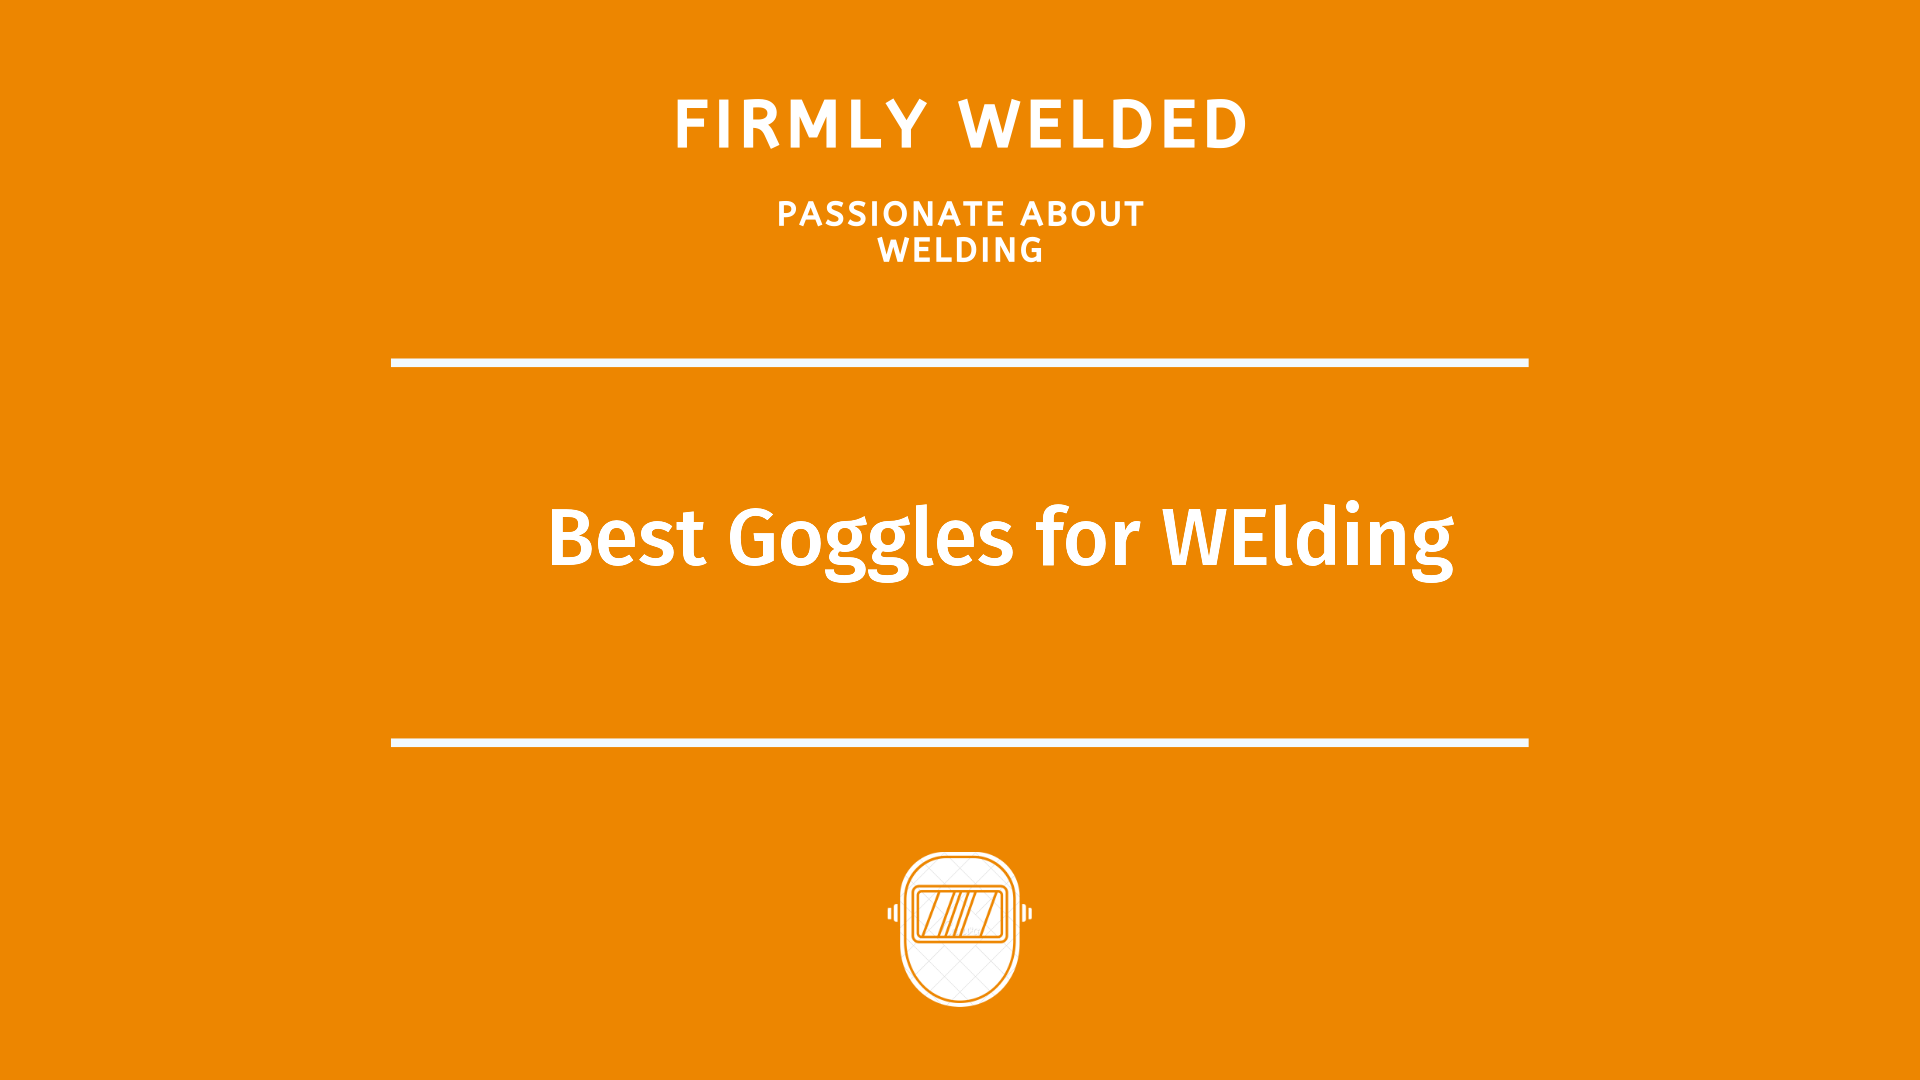 Best Goggles for WElding